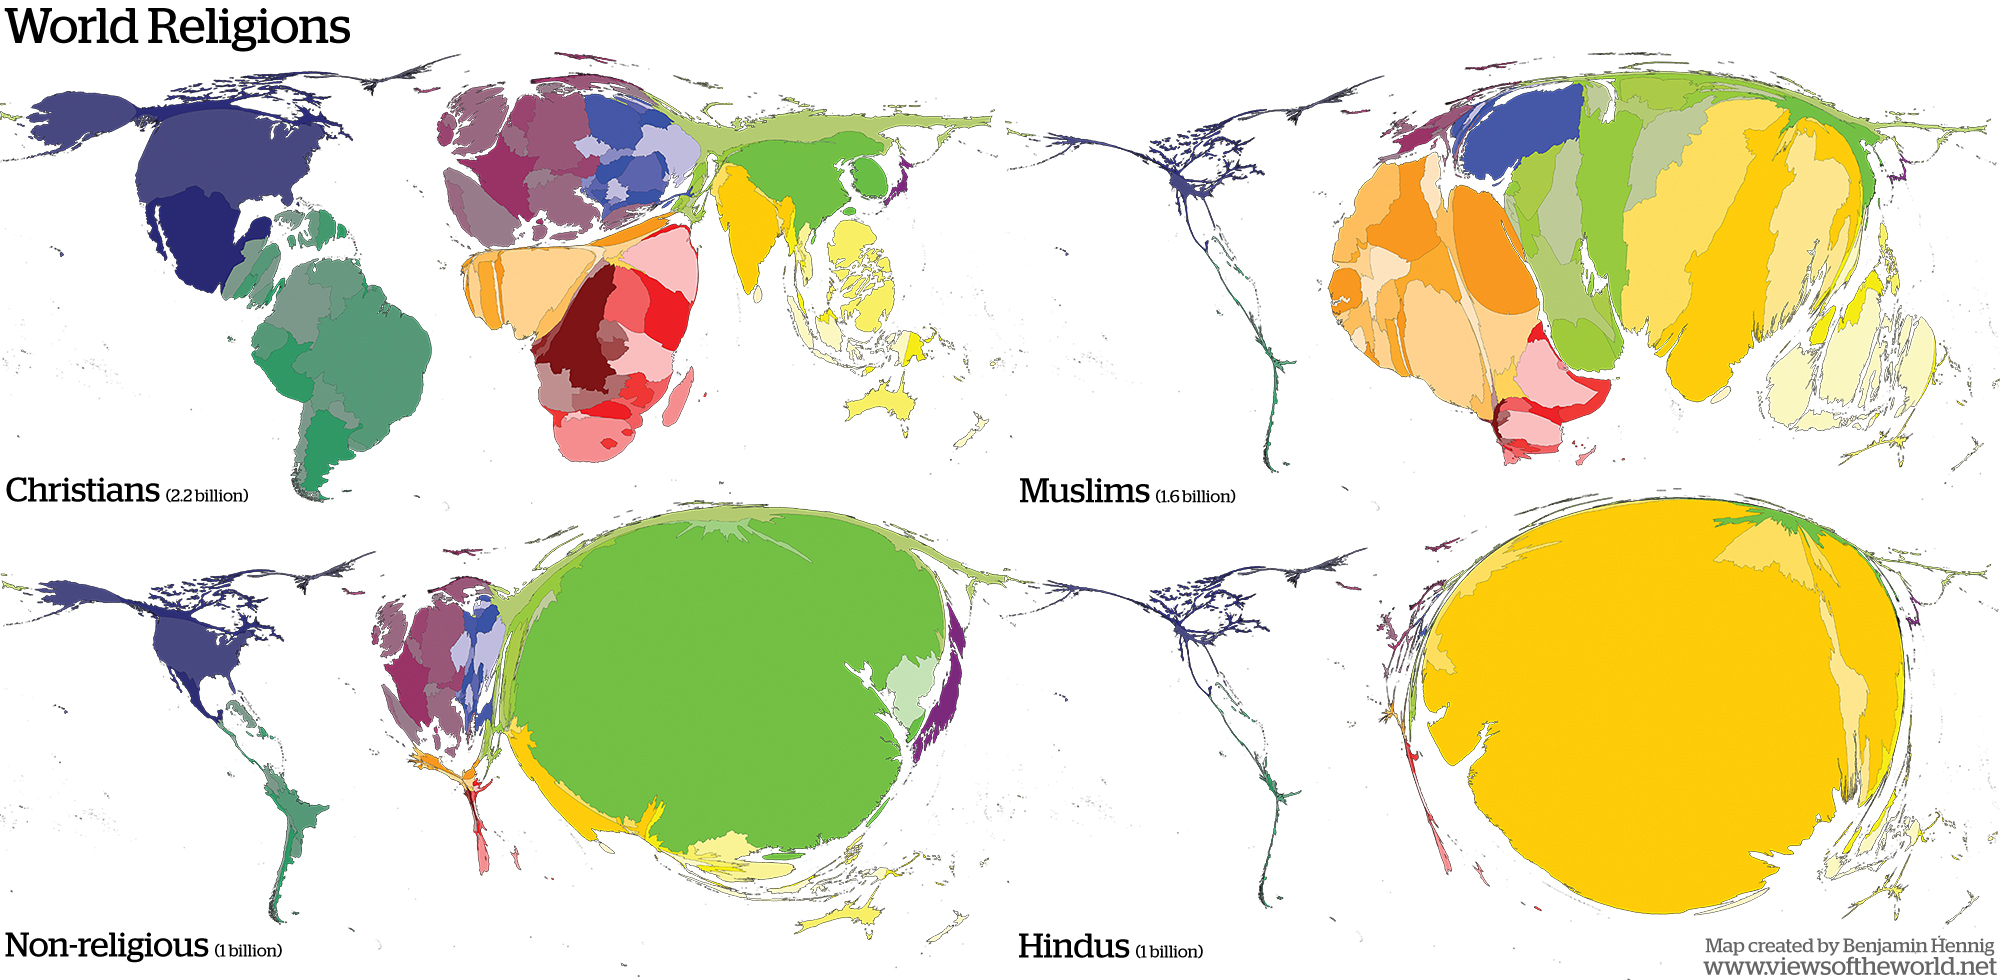 World Religions Views Of The World - World's largest religions in order